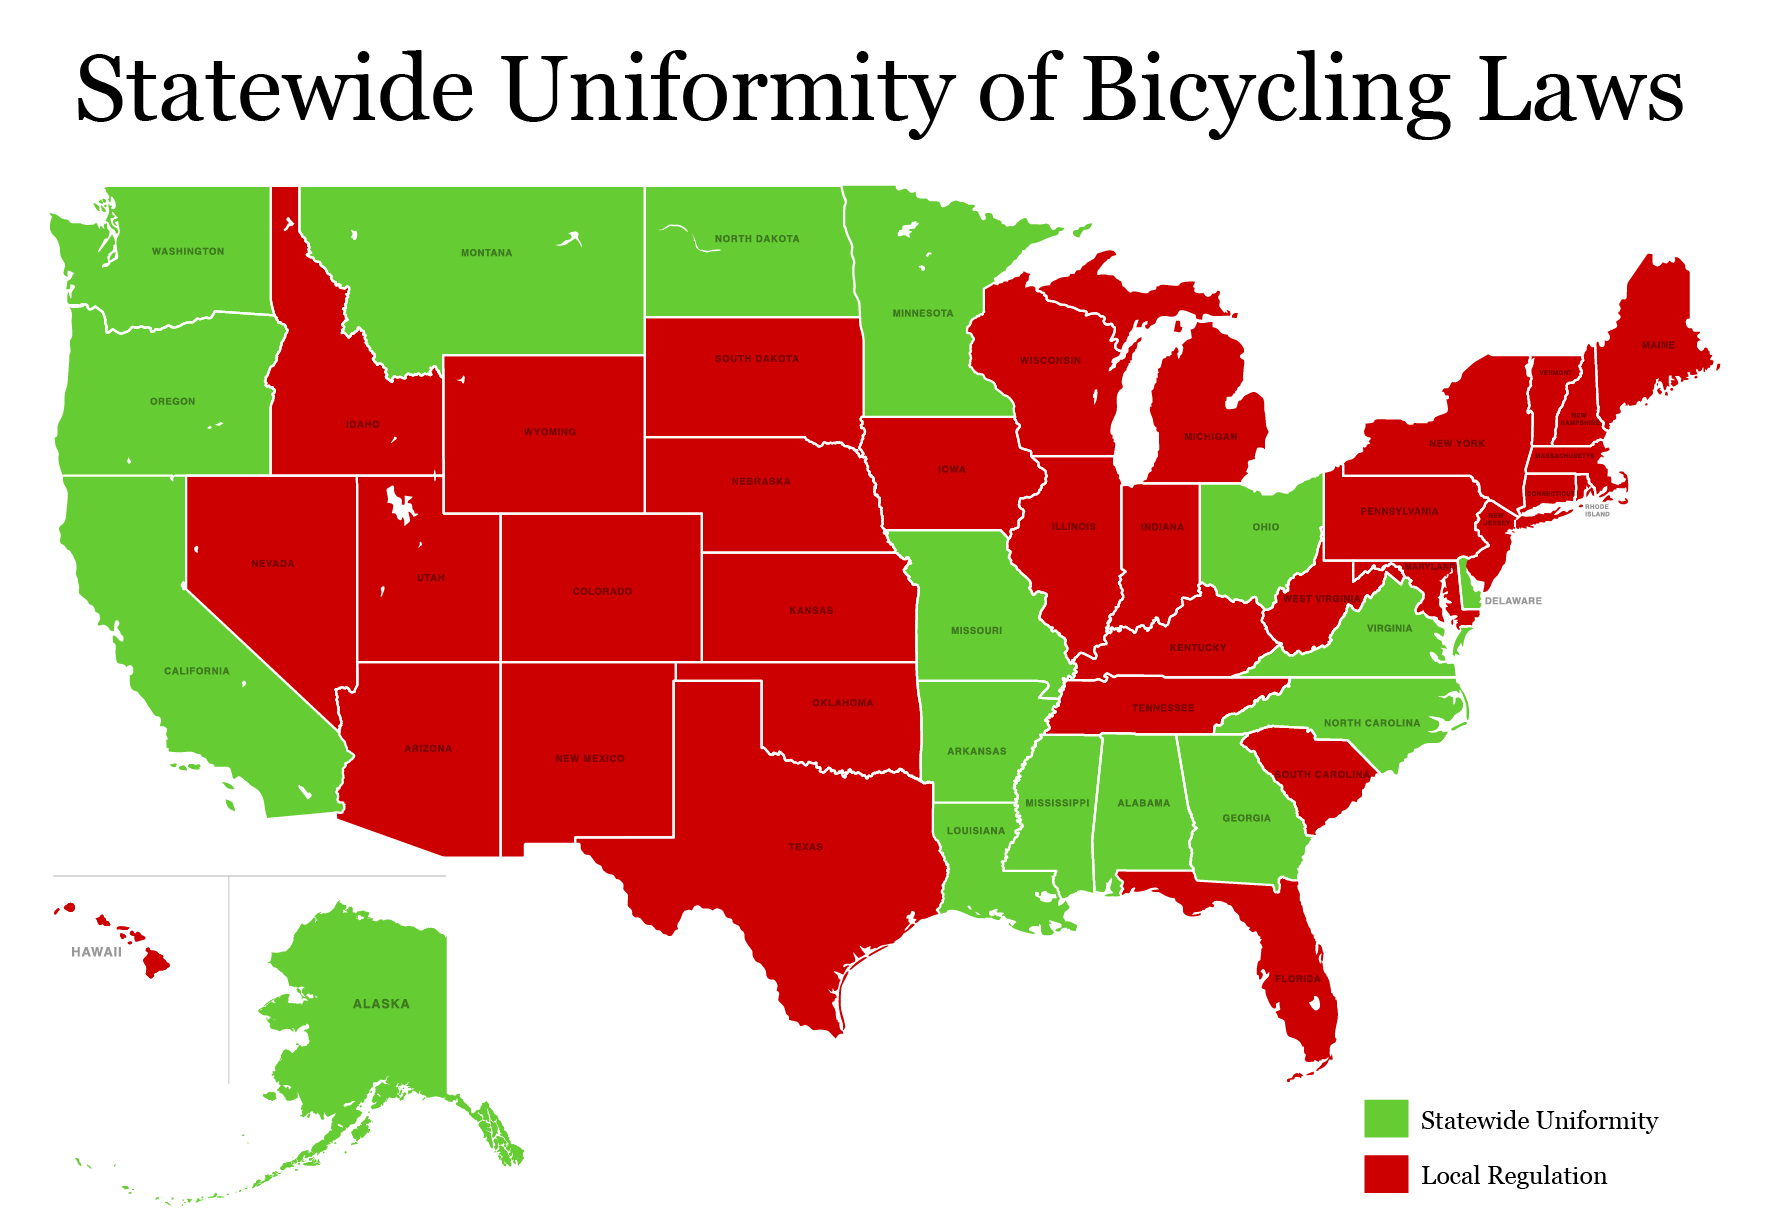 U.S. Bicycle Laws by State - i am traffic on maps colorado, maps washington, maps mk, biggest college in each state, maps city, maps united states, most white populated state, maps oklahoma, map of each state, biggest us state, maps ohio, maps maps, maps to color, wealthiest person in each state, maps brazil only, maps virginia, biggest company in each state, world's richest state, 2014 state of the state,